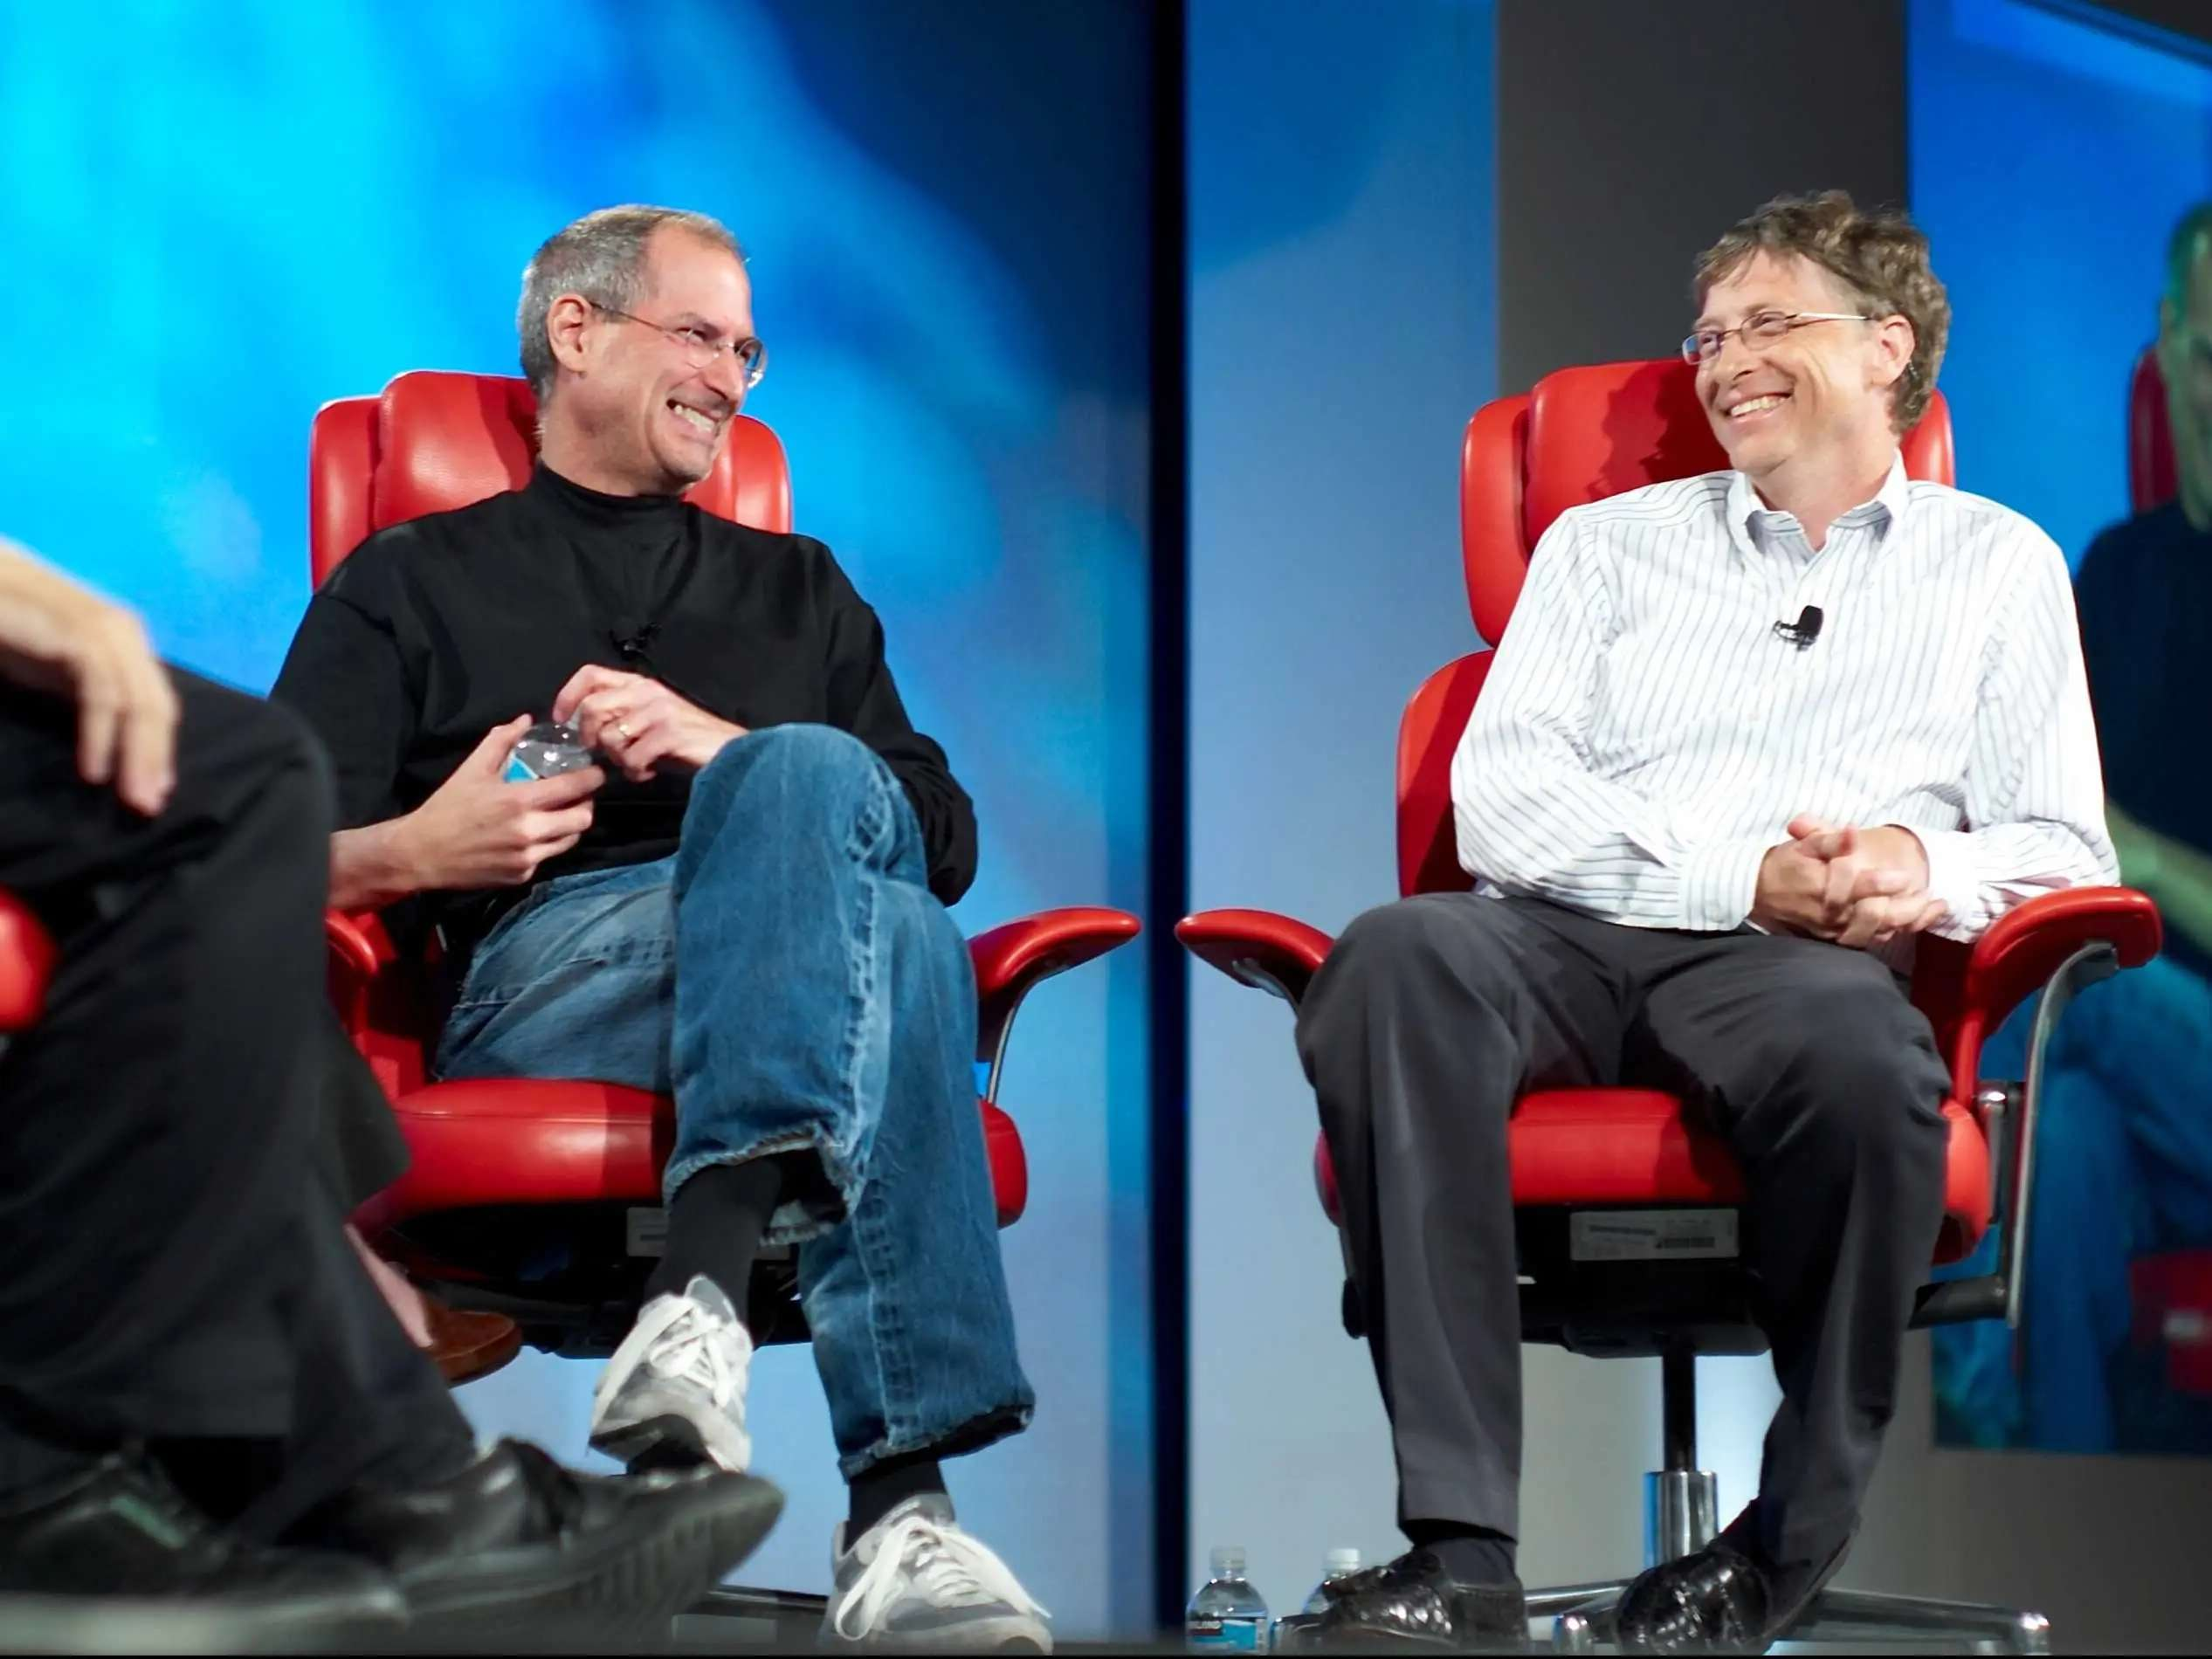 On working with Steve Jobs